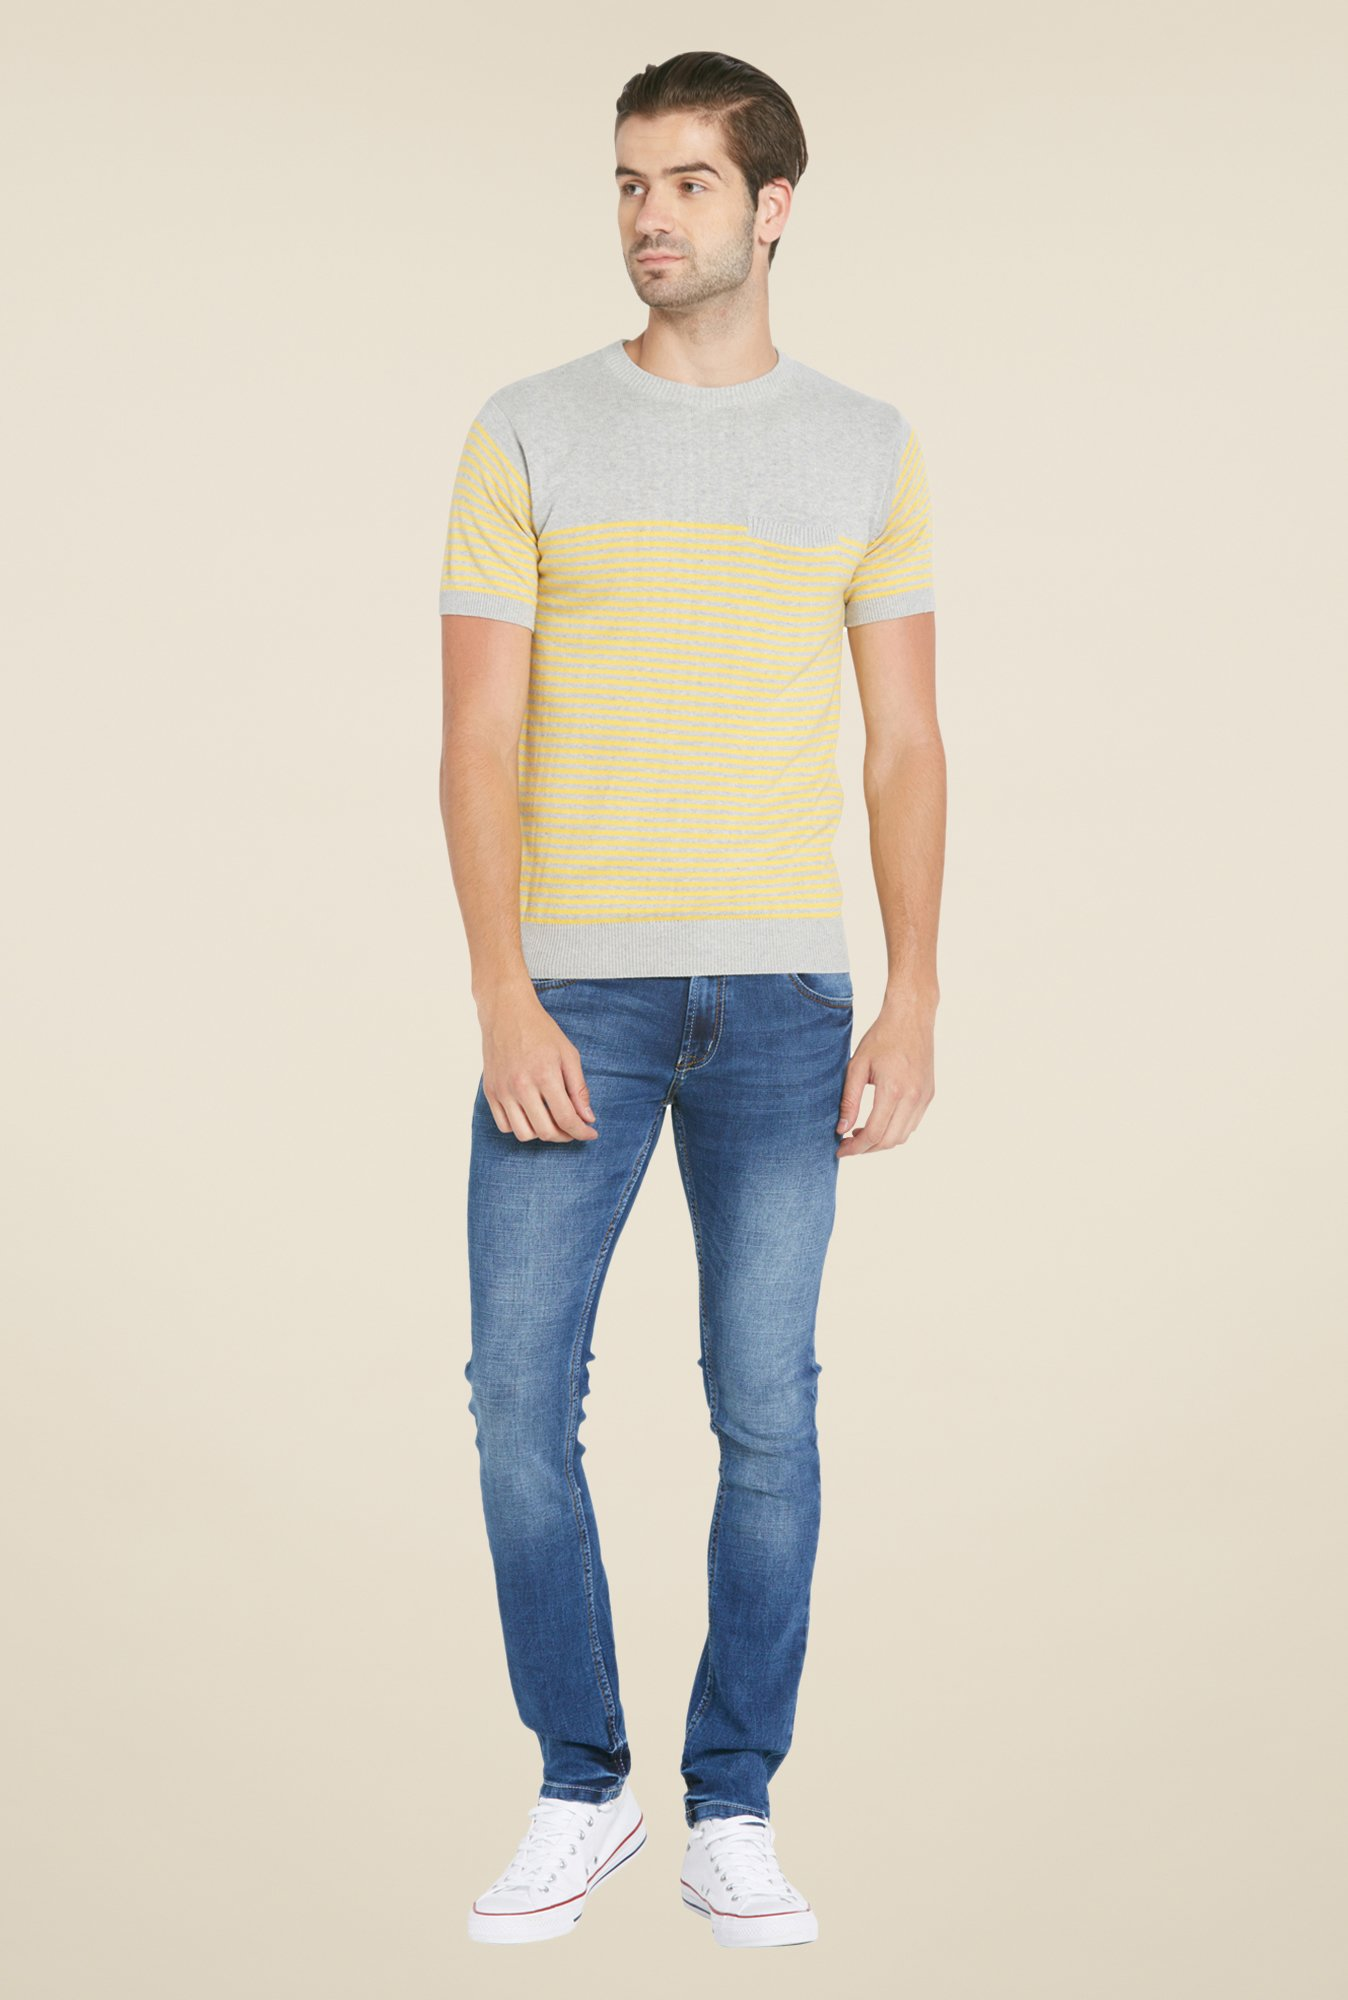 Globus Yellow & Grey Striped T Shirt